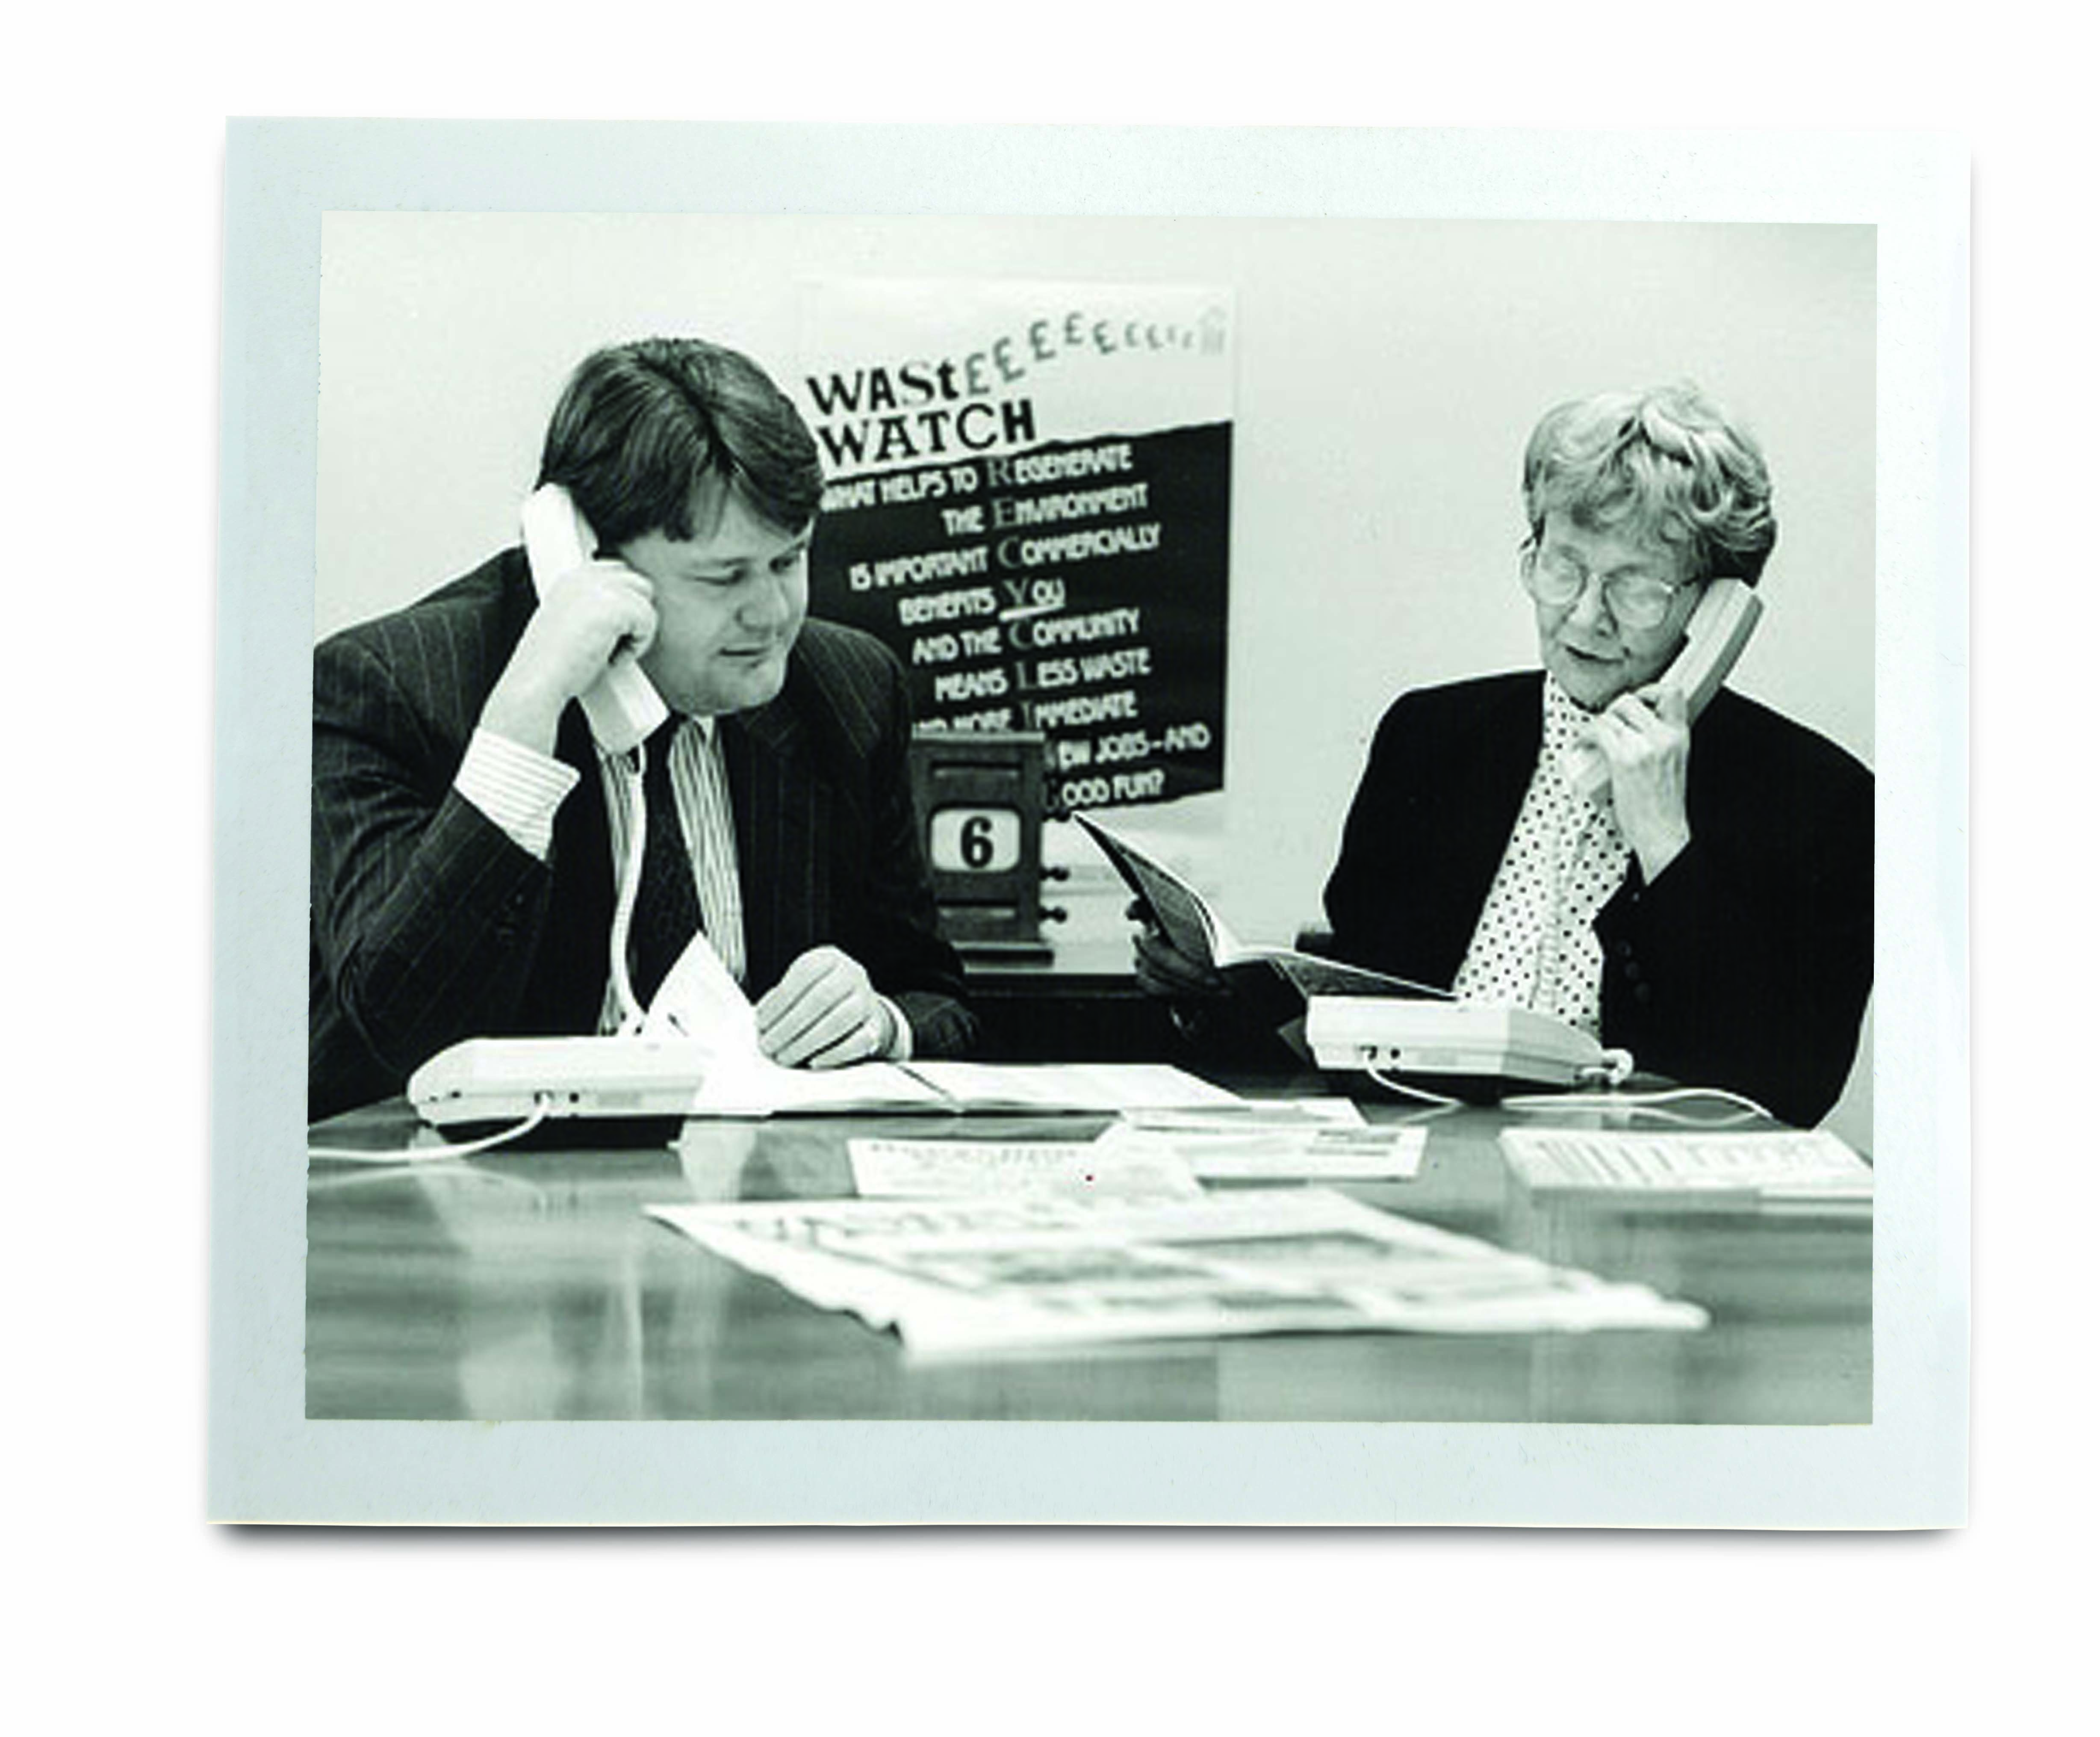 An image of two people on the phone